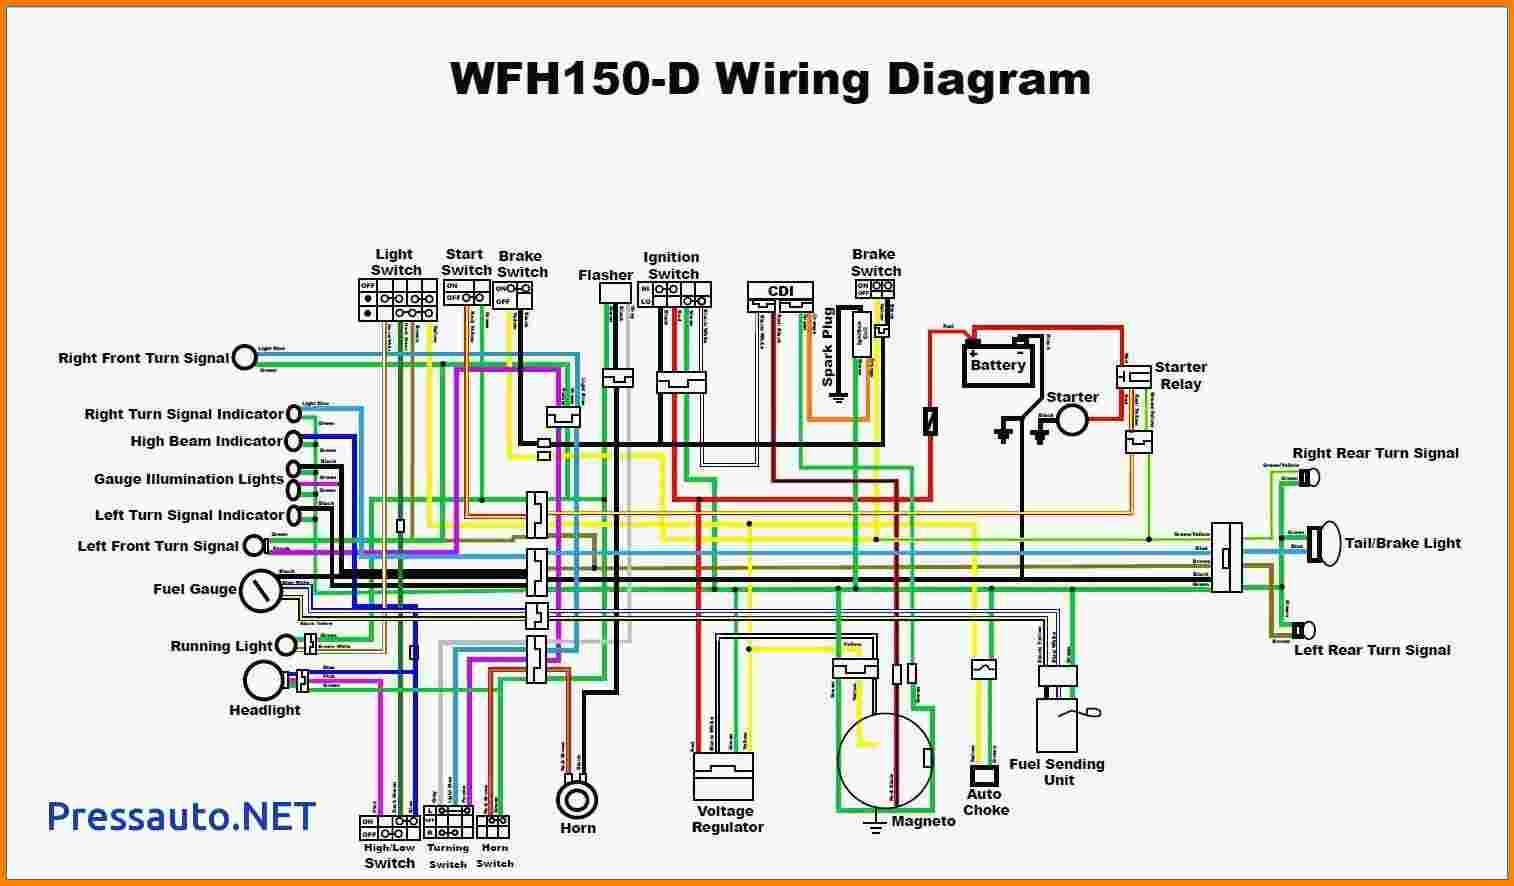 110Cc Quad Wiring Diagram - Wiring Diagram Data Oreo - 110Cc Atv Wiring Diagram